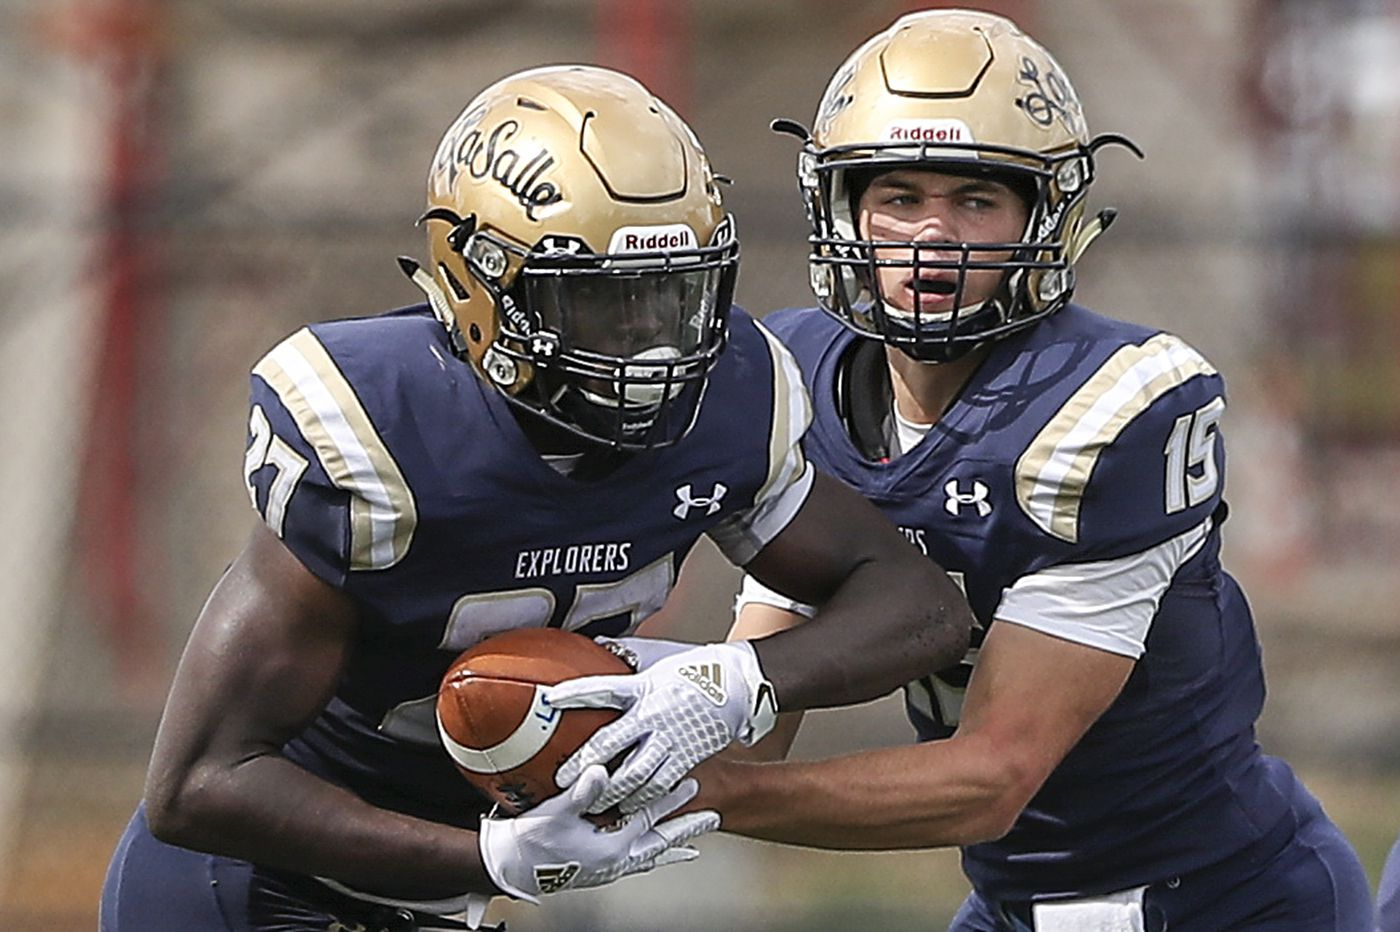 Saturday's Southeastern Pa. roundup: Sam Brown leads La Salle past Father Judge, 49-7